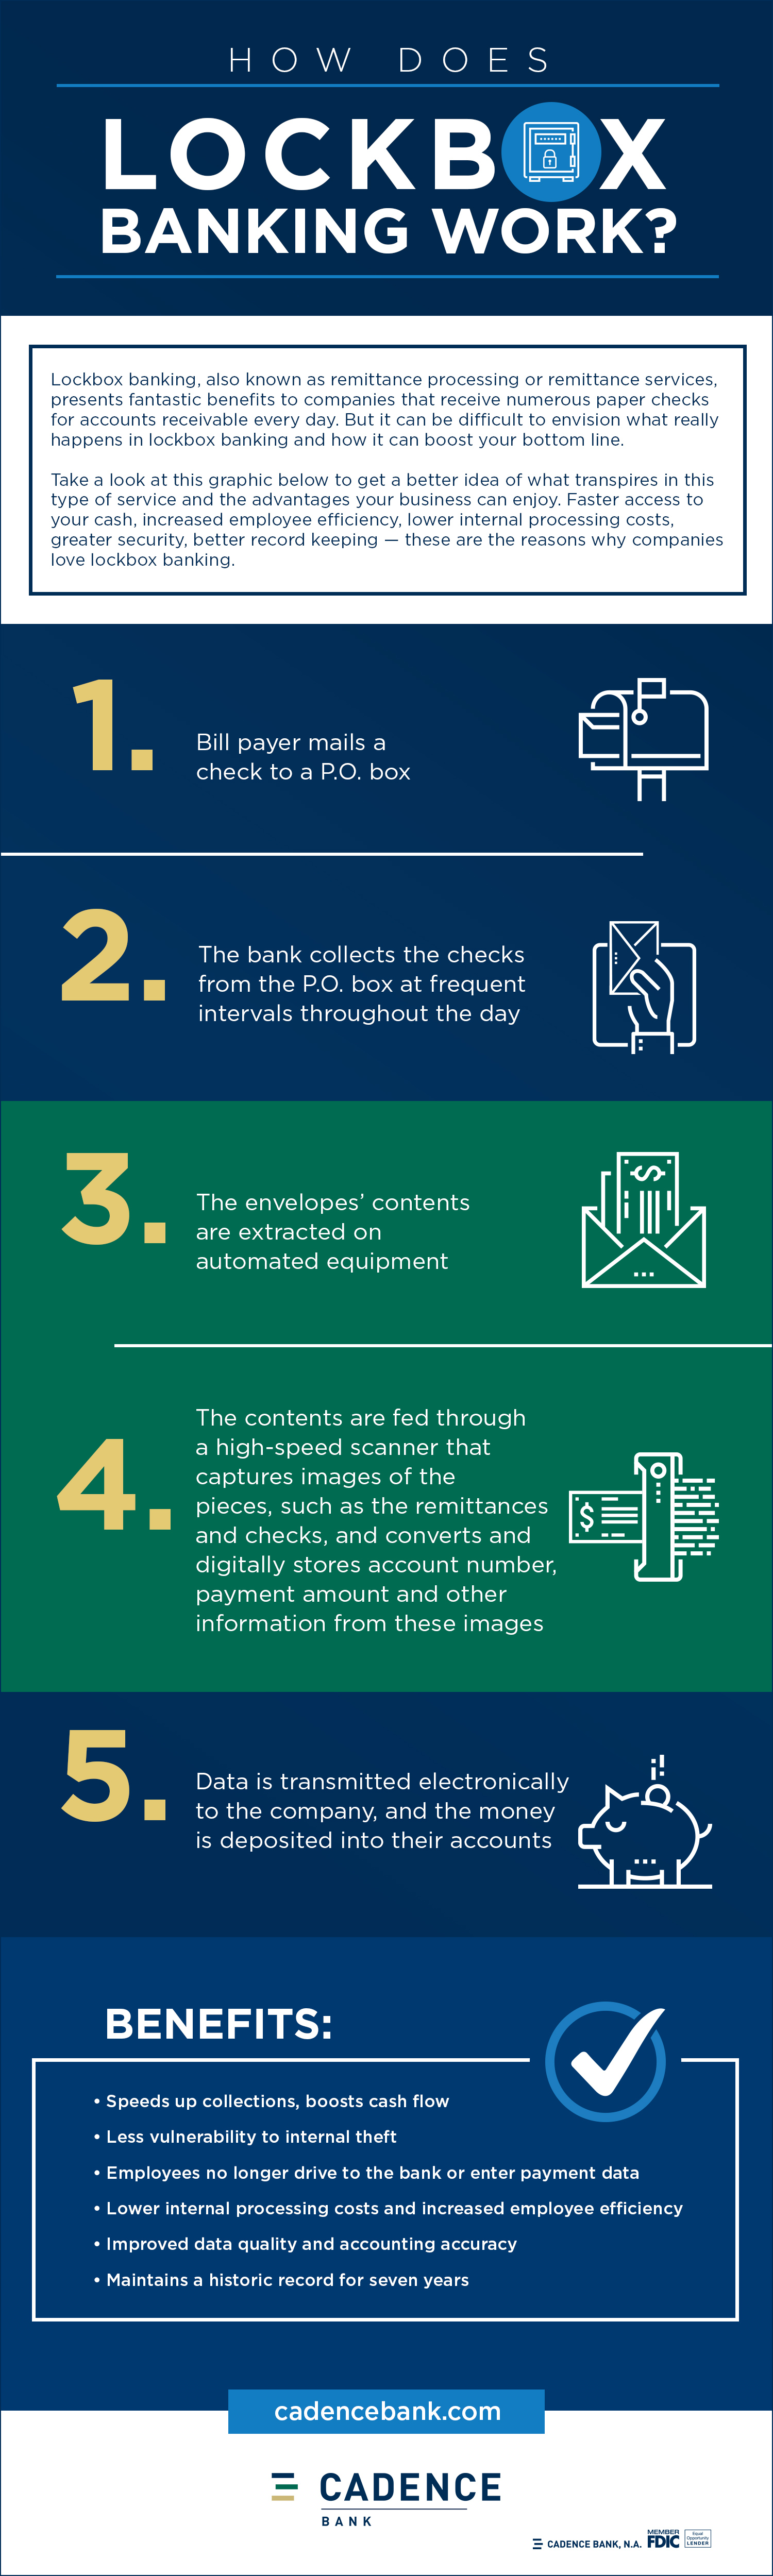 How Does Lockbox Banking Work